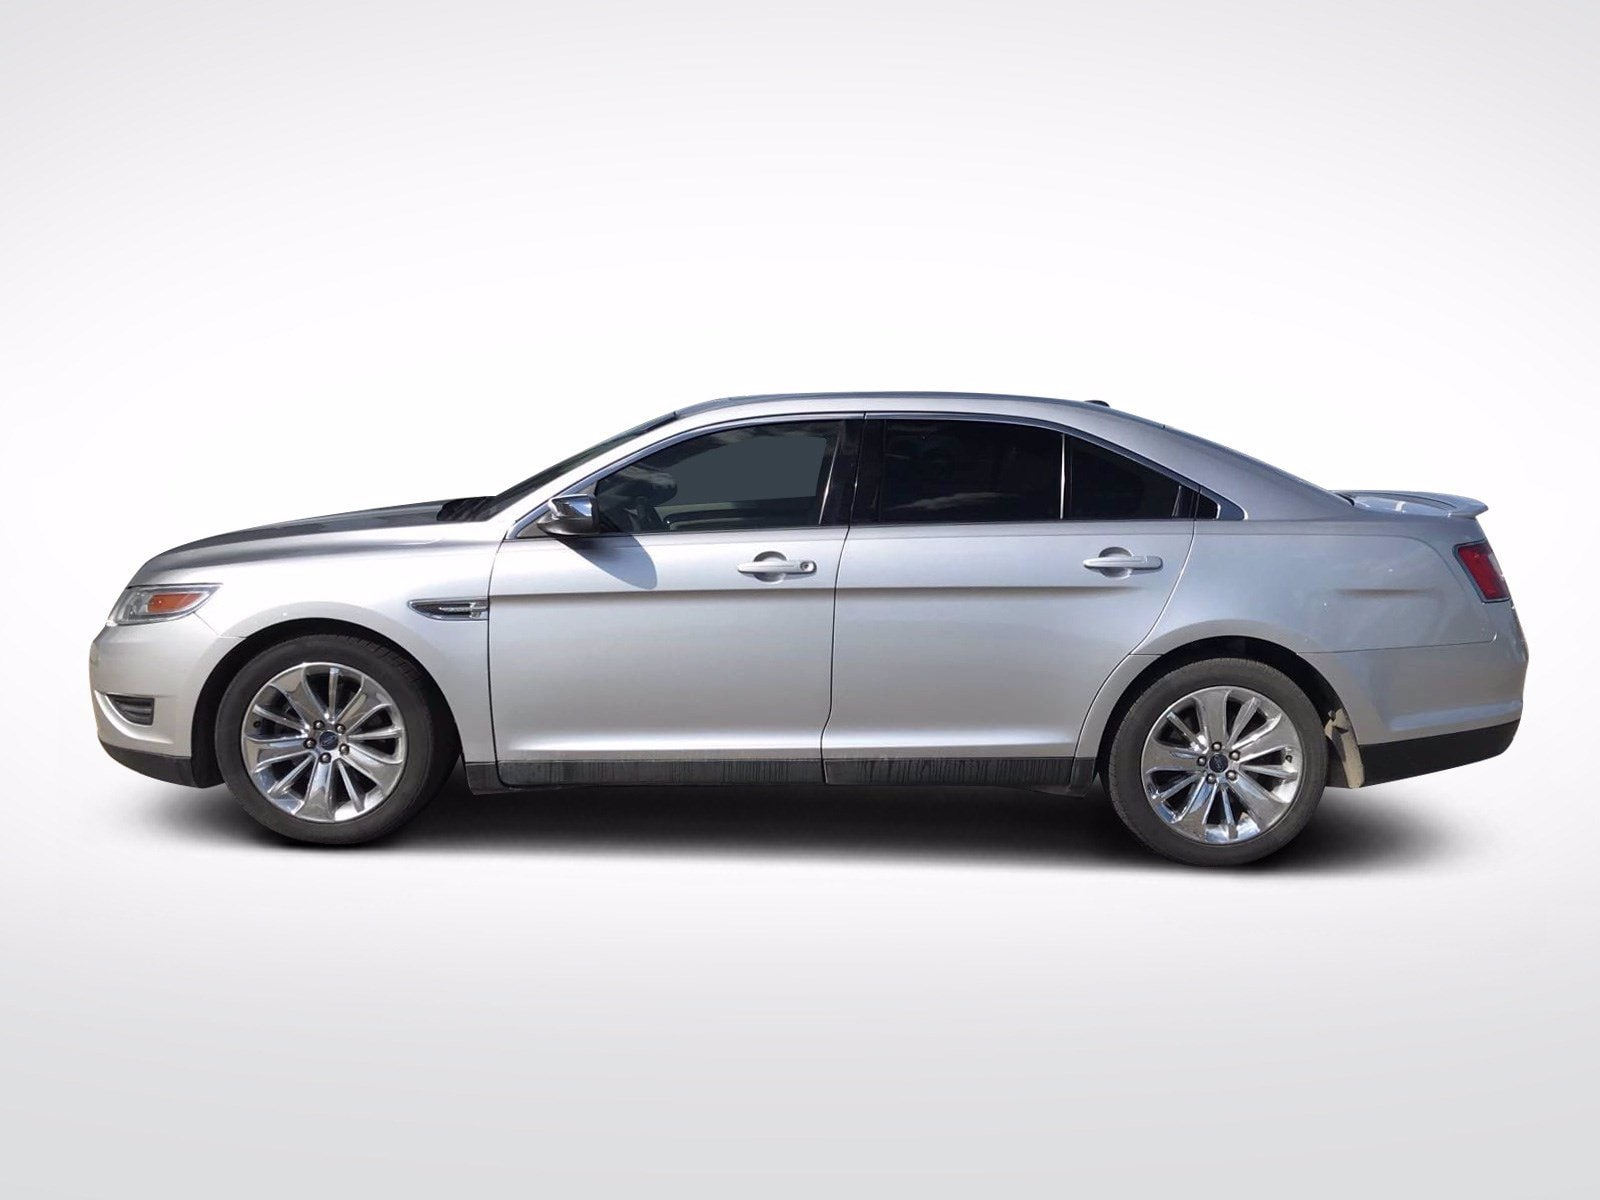 Used 2010 Ford Taurus Limited with VIN 1FAHP2FW5AG138458 for sale in Willmar, Minnesota